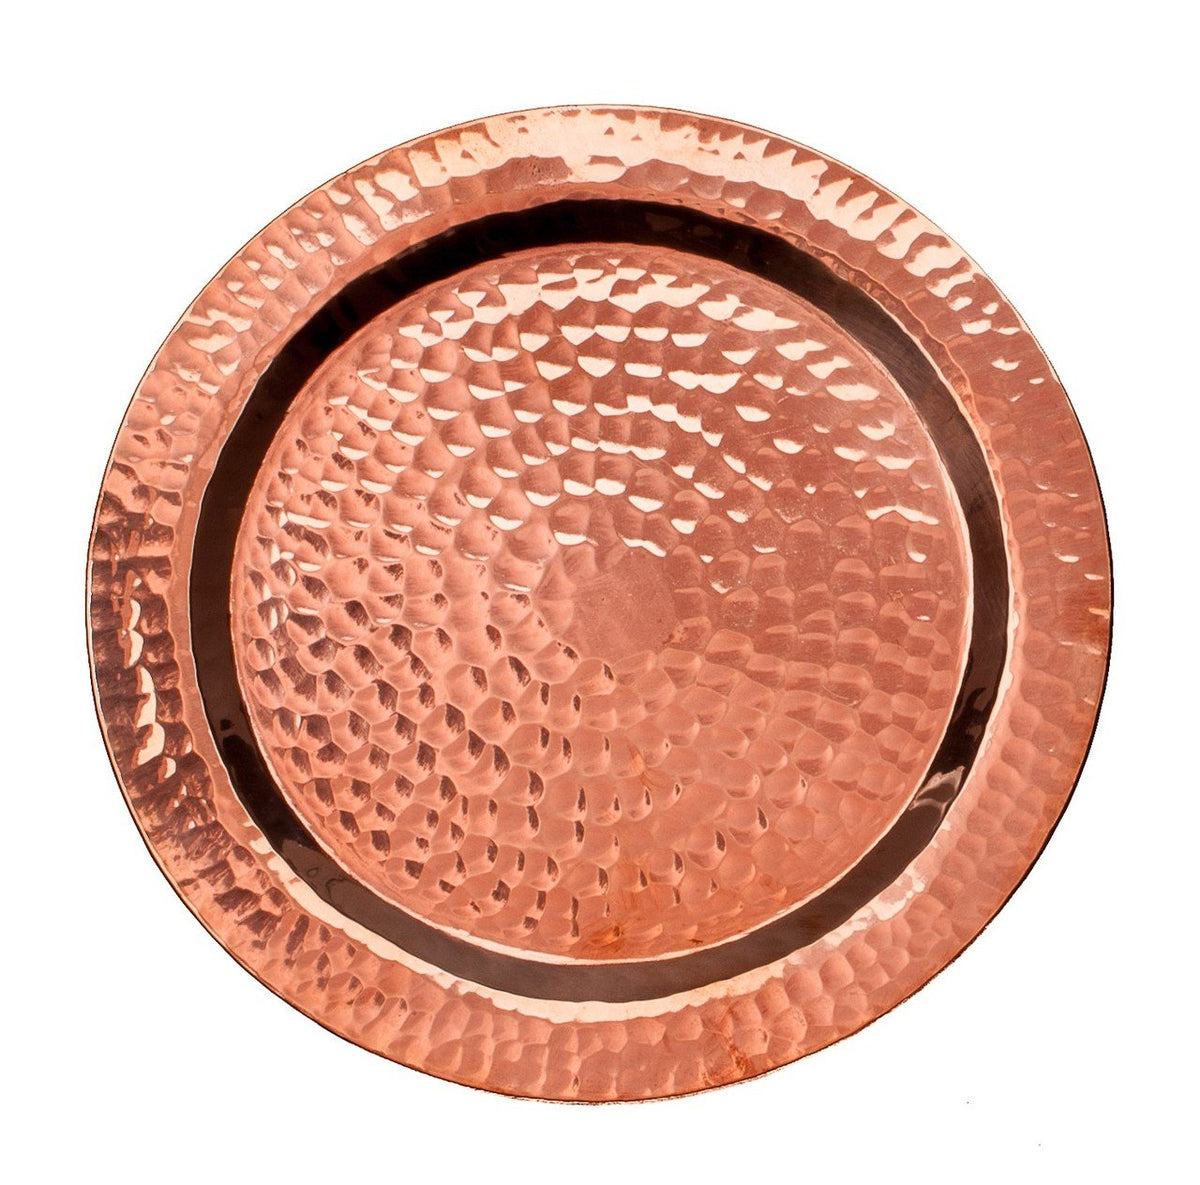 Napa Copper Bottle Coasters